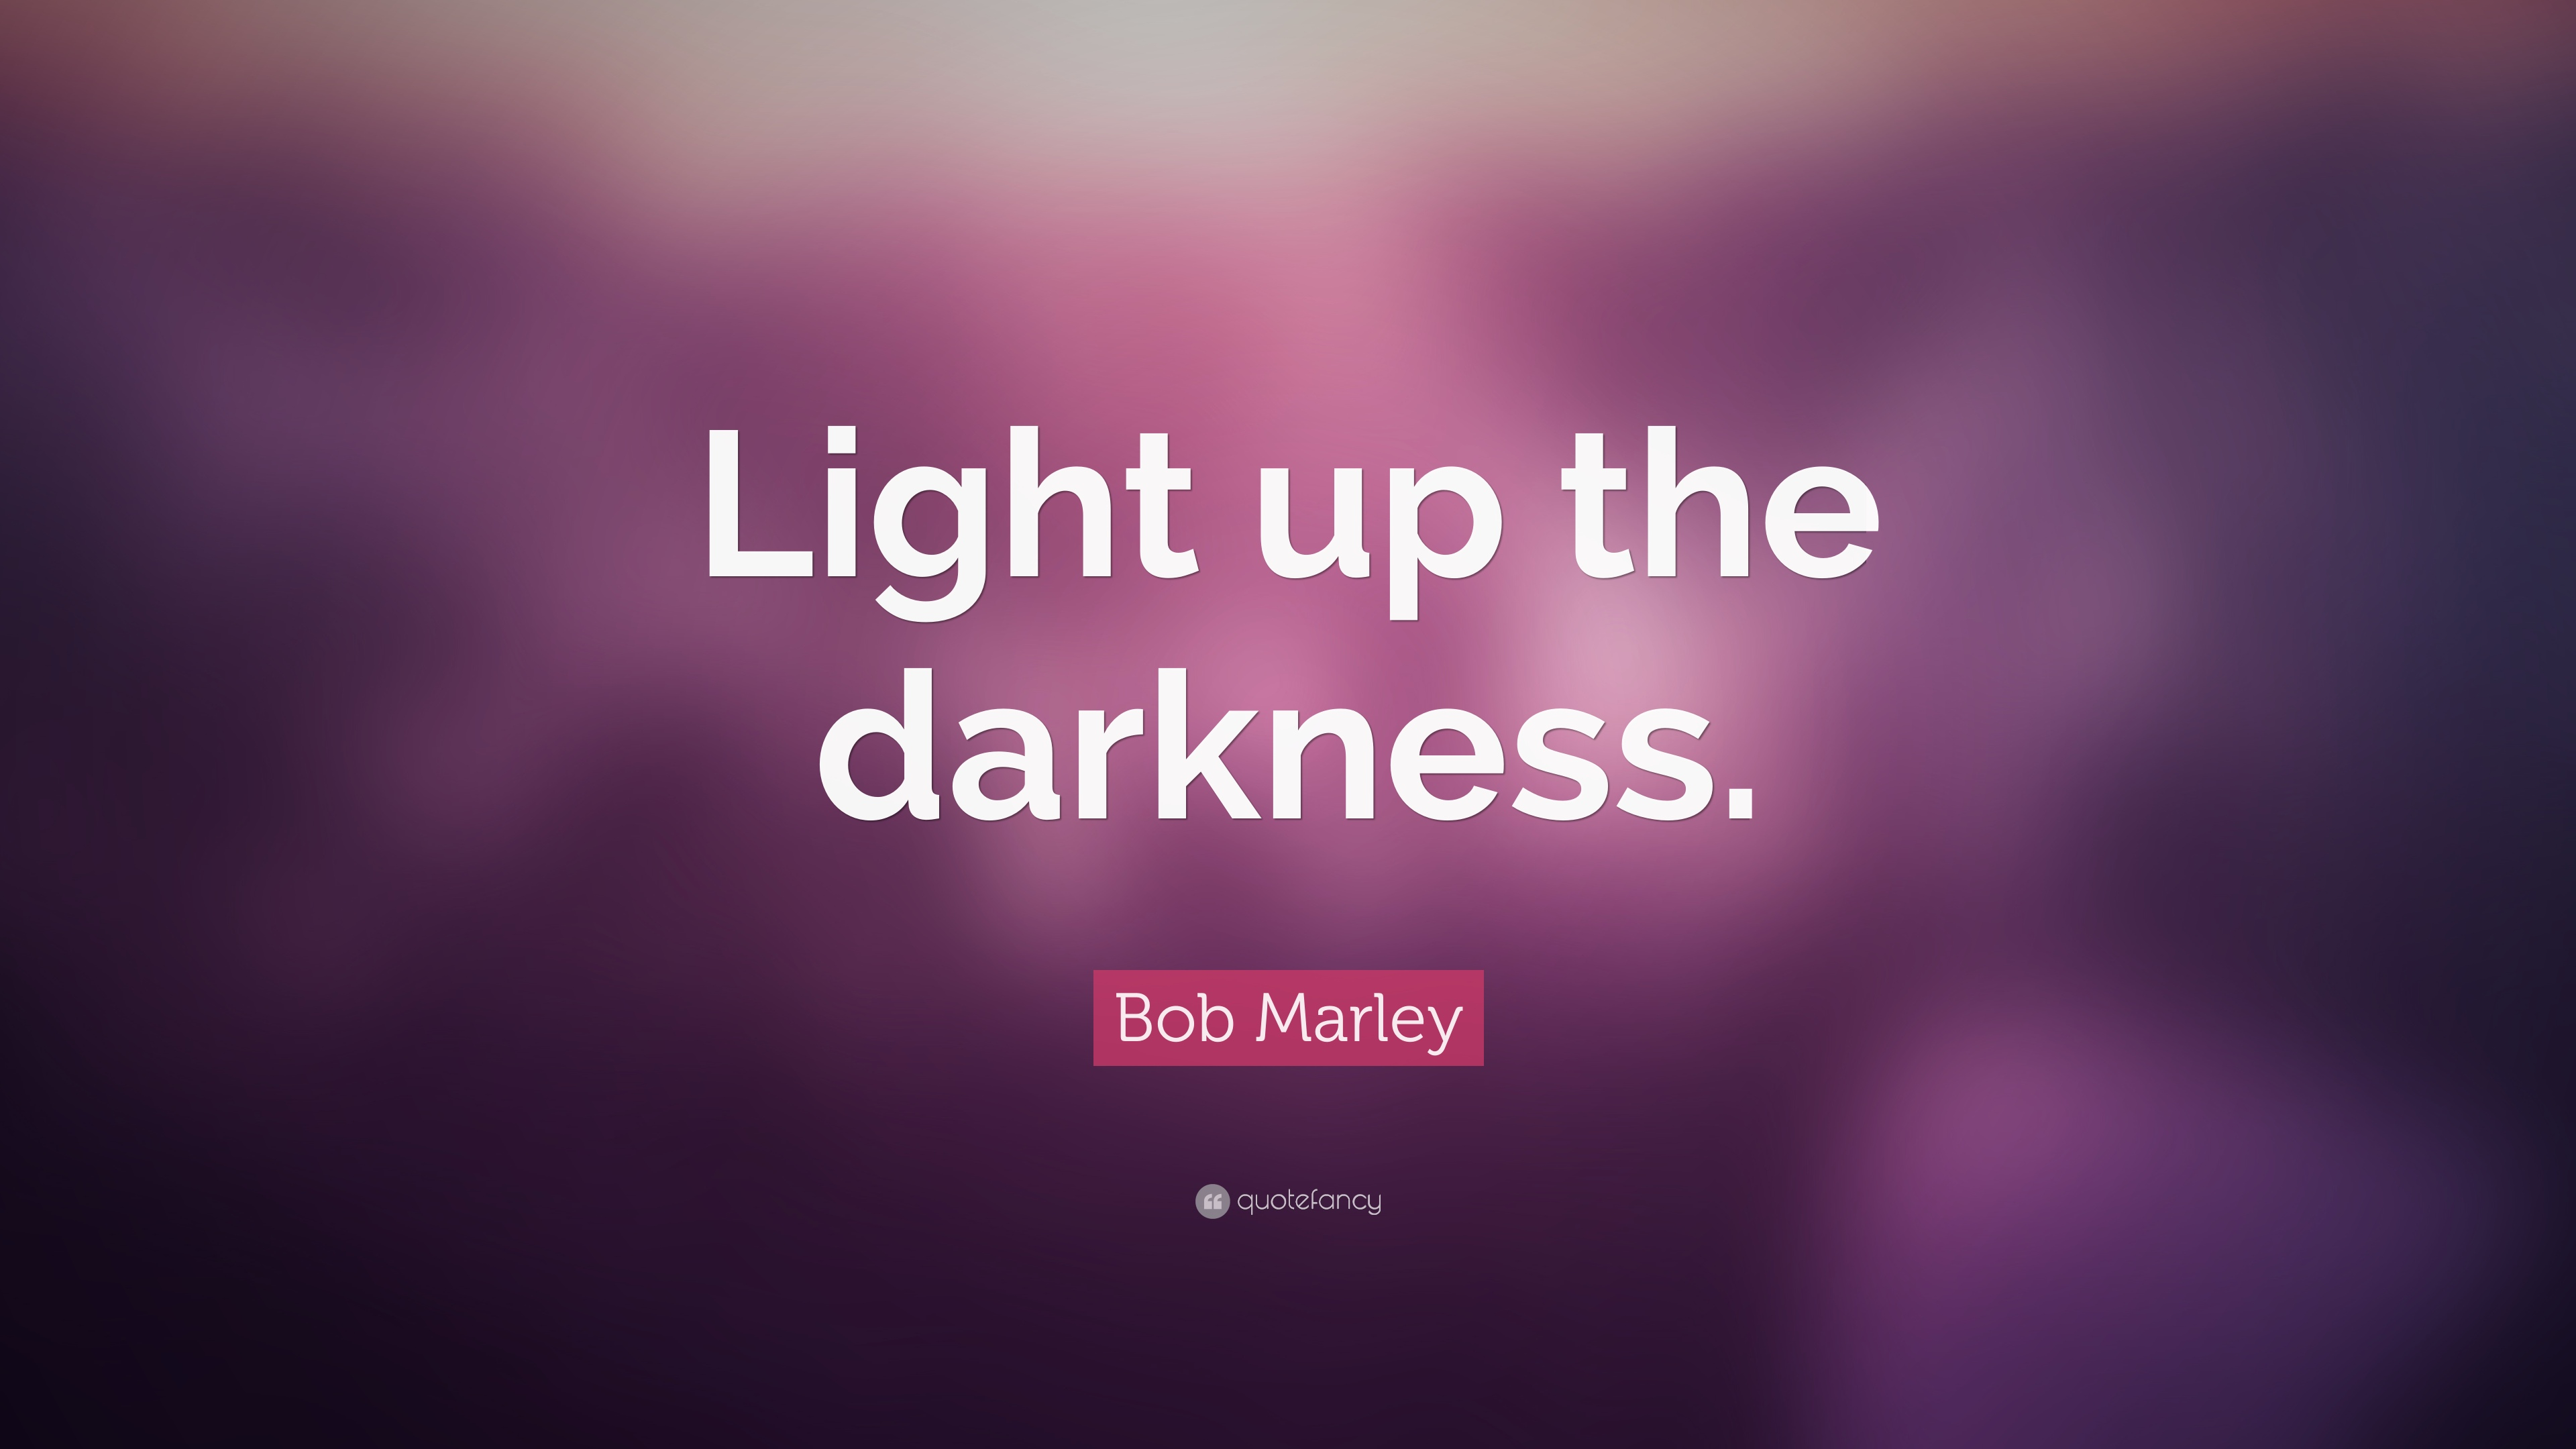 & Quotes about Lighting Up The Darkness (13 quotes) azcodes.com